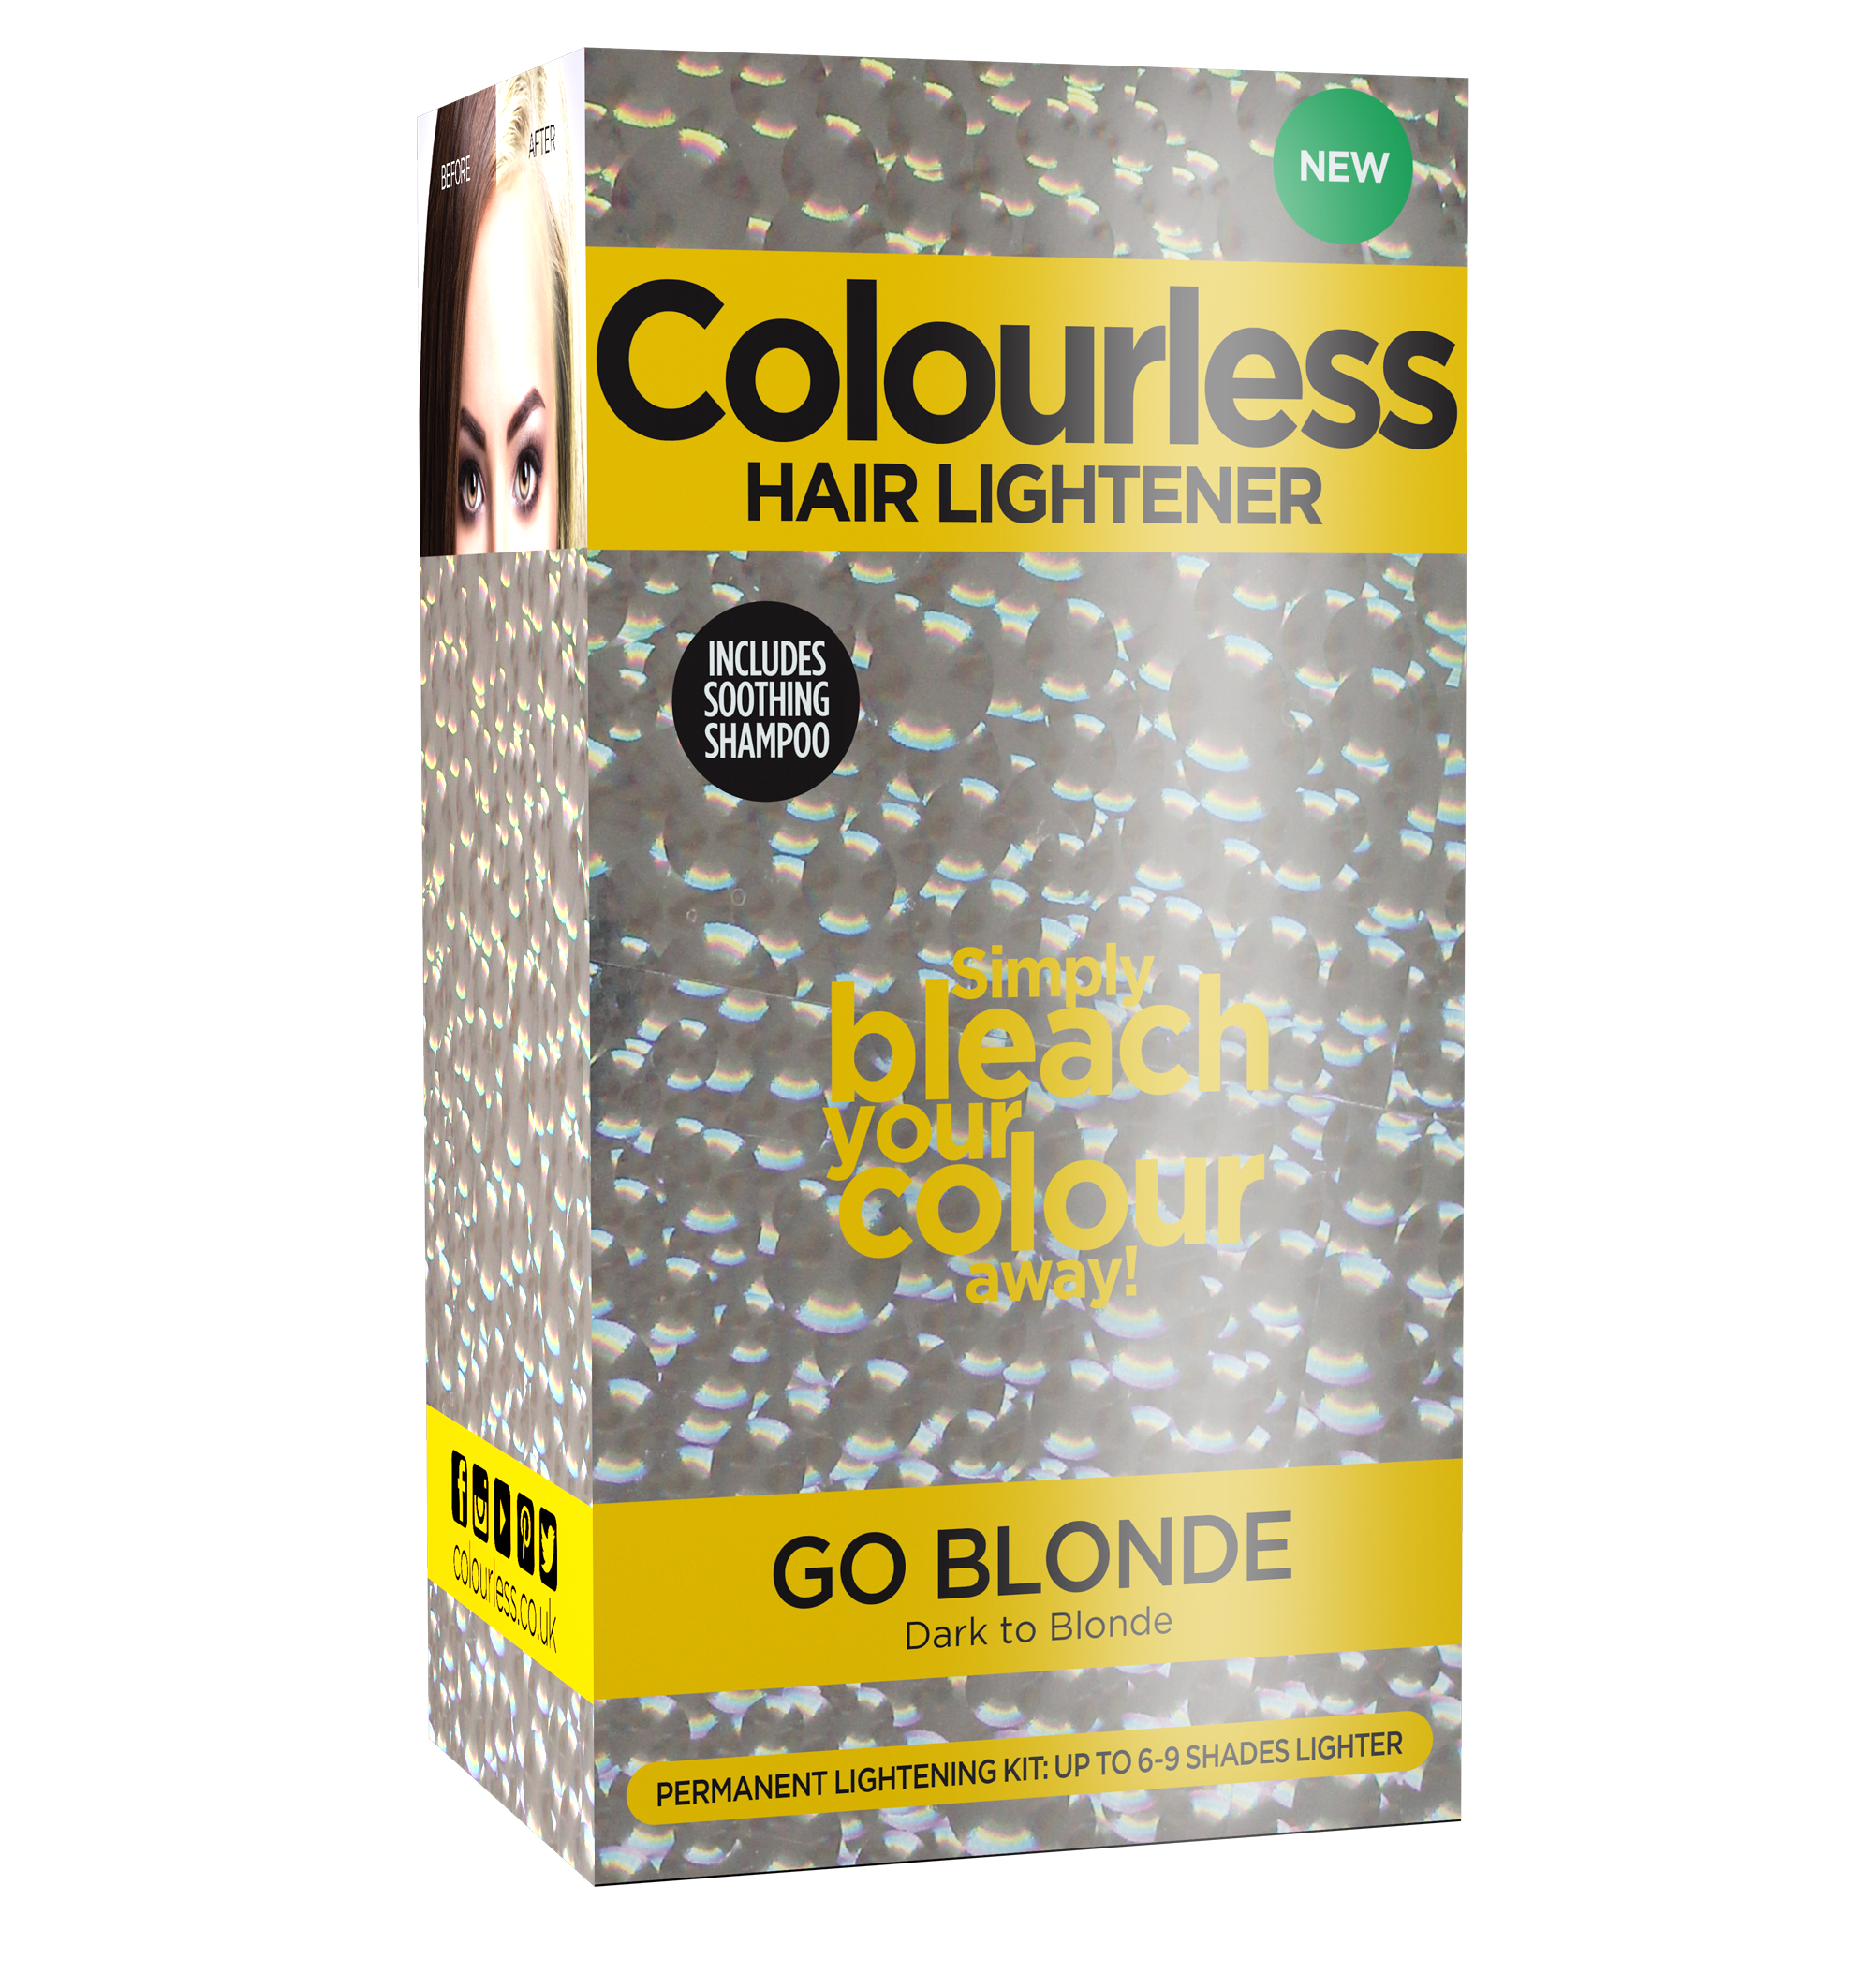 Colourless Go Blonde